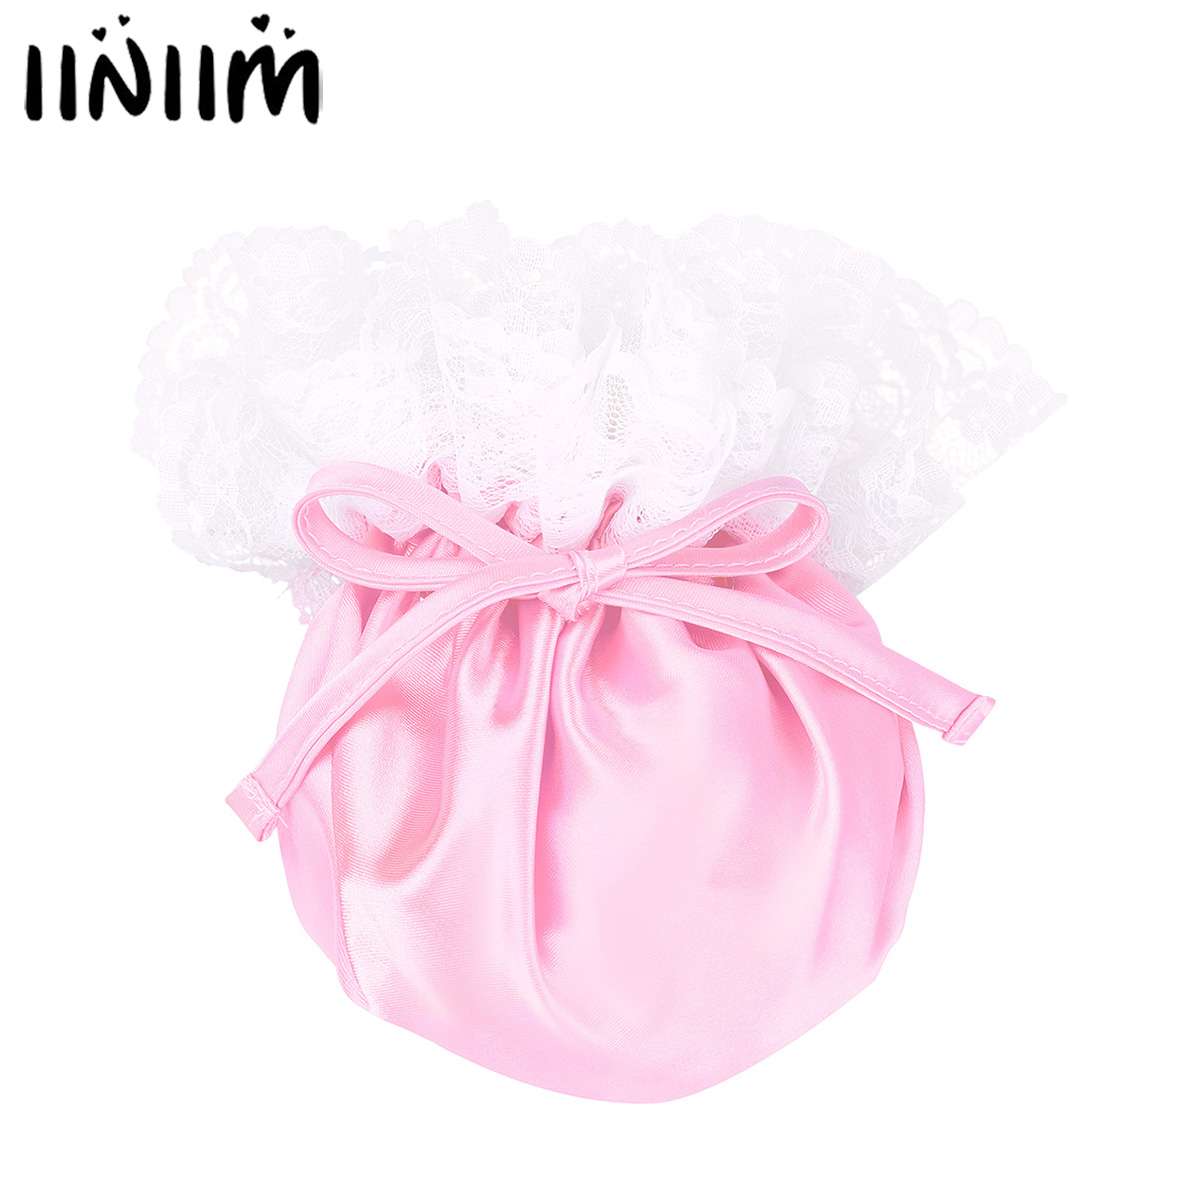 Adult Mens Sissy C-String Lingerie Gay Male Panties Floral Lace Elastic Drawstring Satin Male Bulge Pouch Mini Briefs Underwear